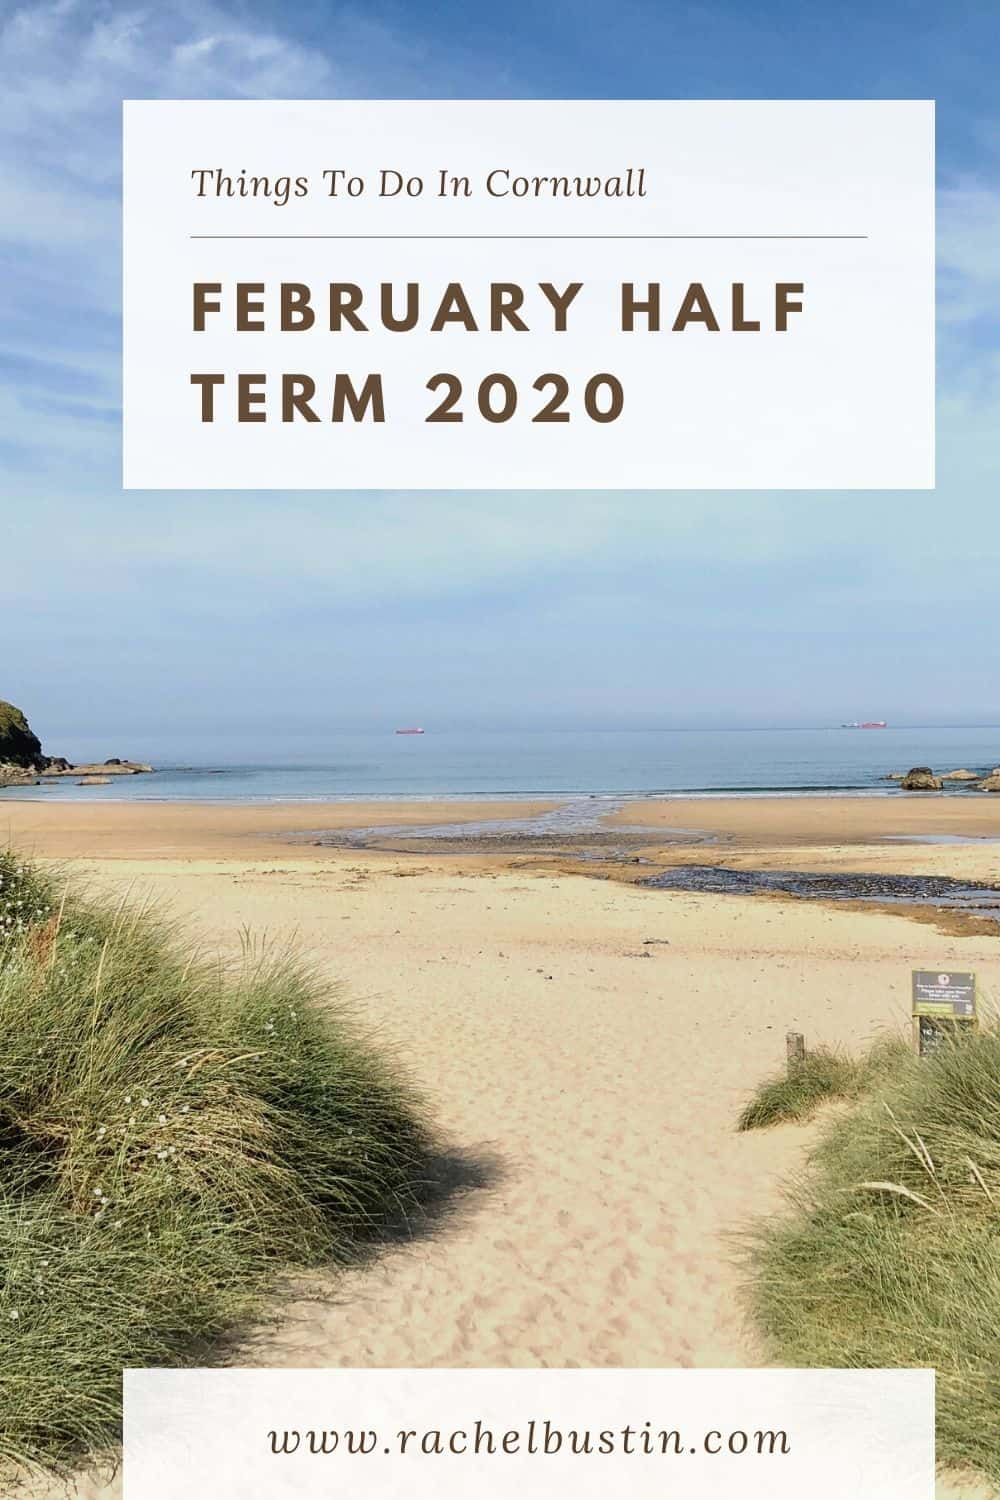 Things To Do In Cornwall February Half Term - Kids activities. family fun, days out in Conrwall